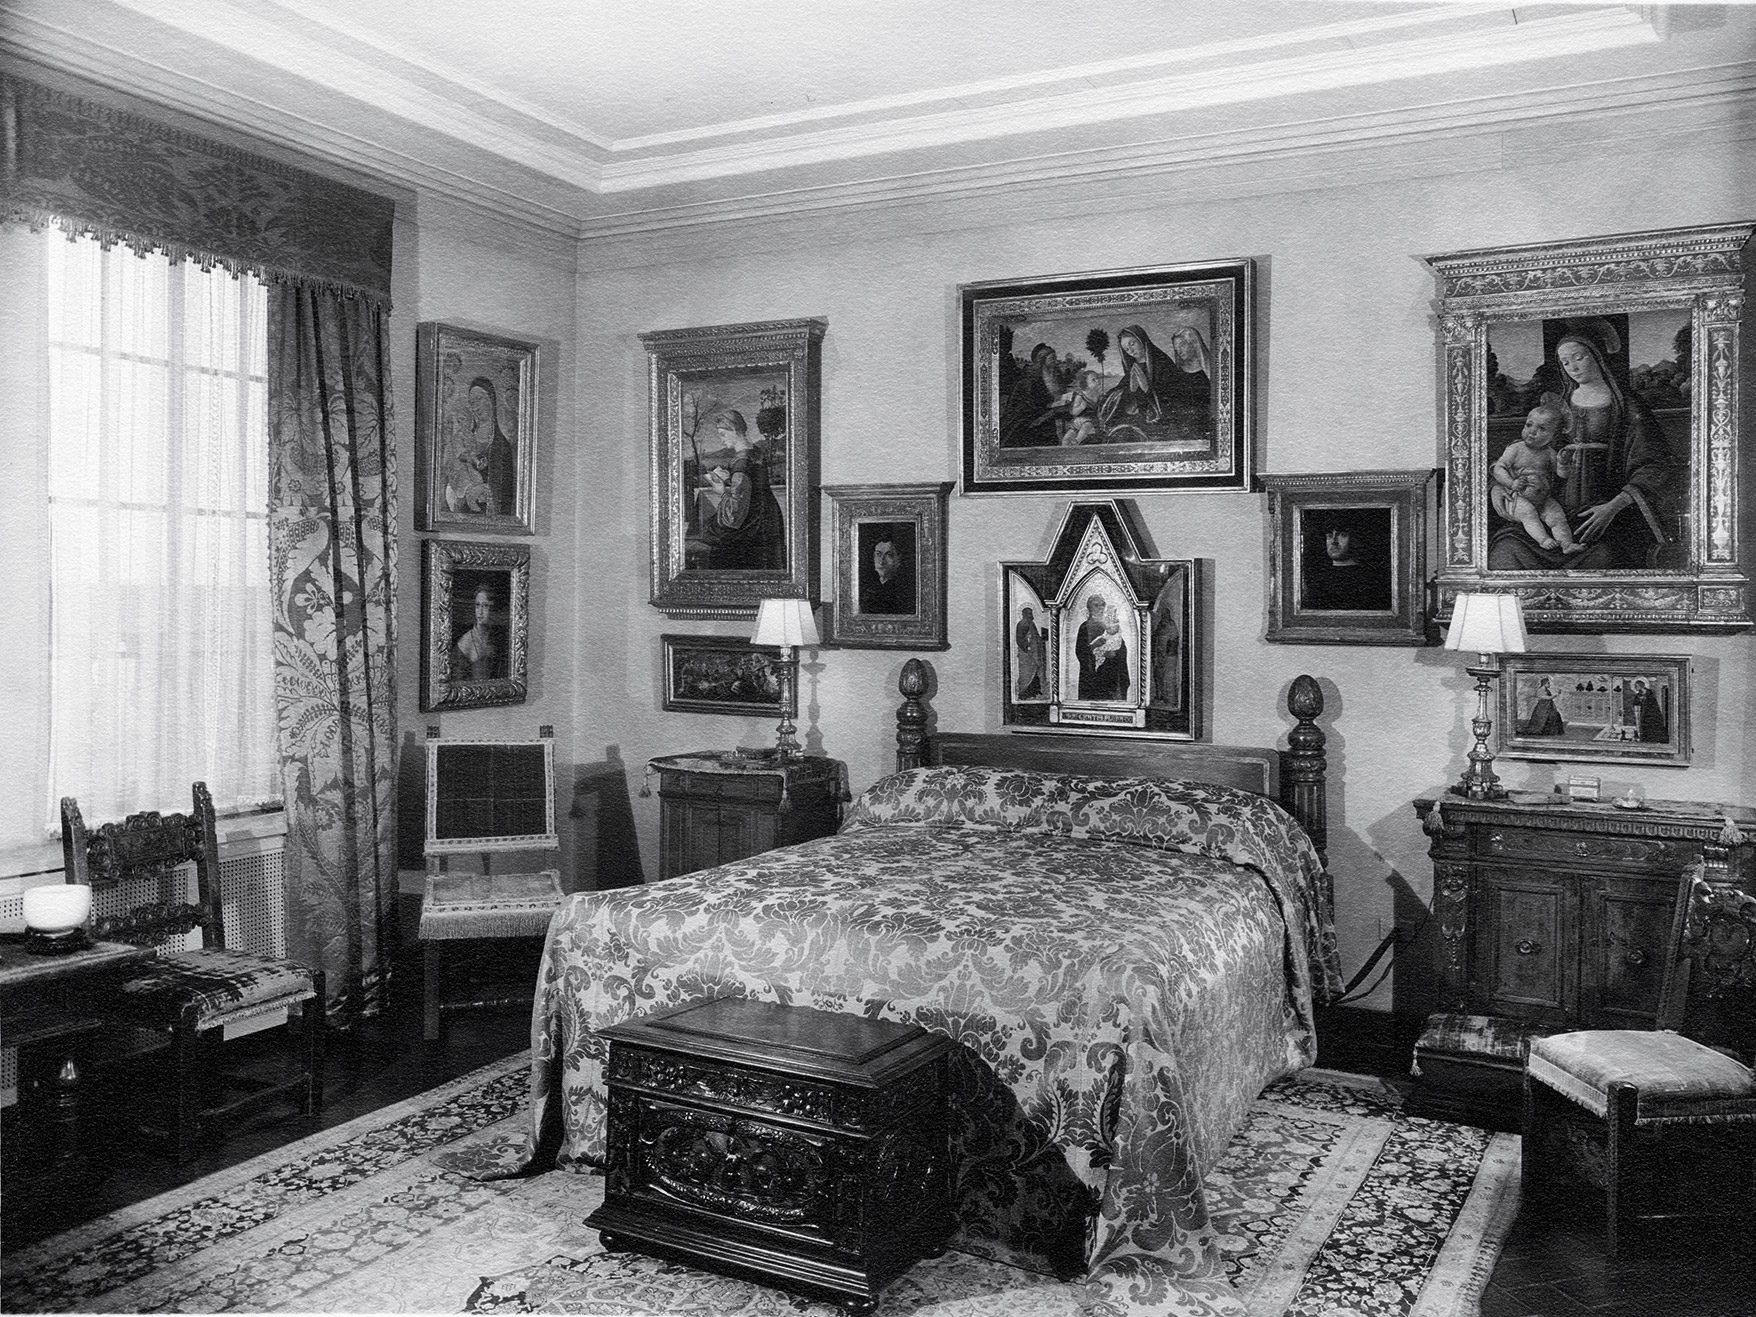 The Carpaccio Bedroom In Samuel Kress Apartment At 1020 Fifth Avenue New York 1938 1939 With Paintings Now National Gallery Of Art